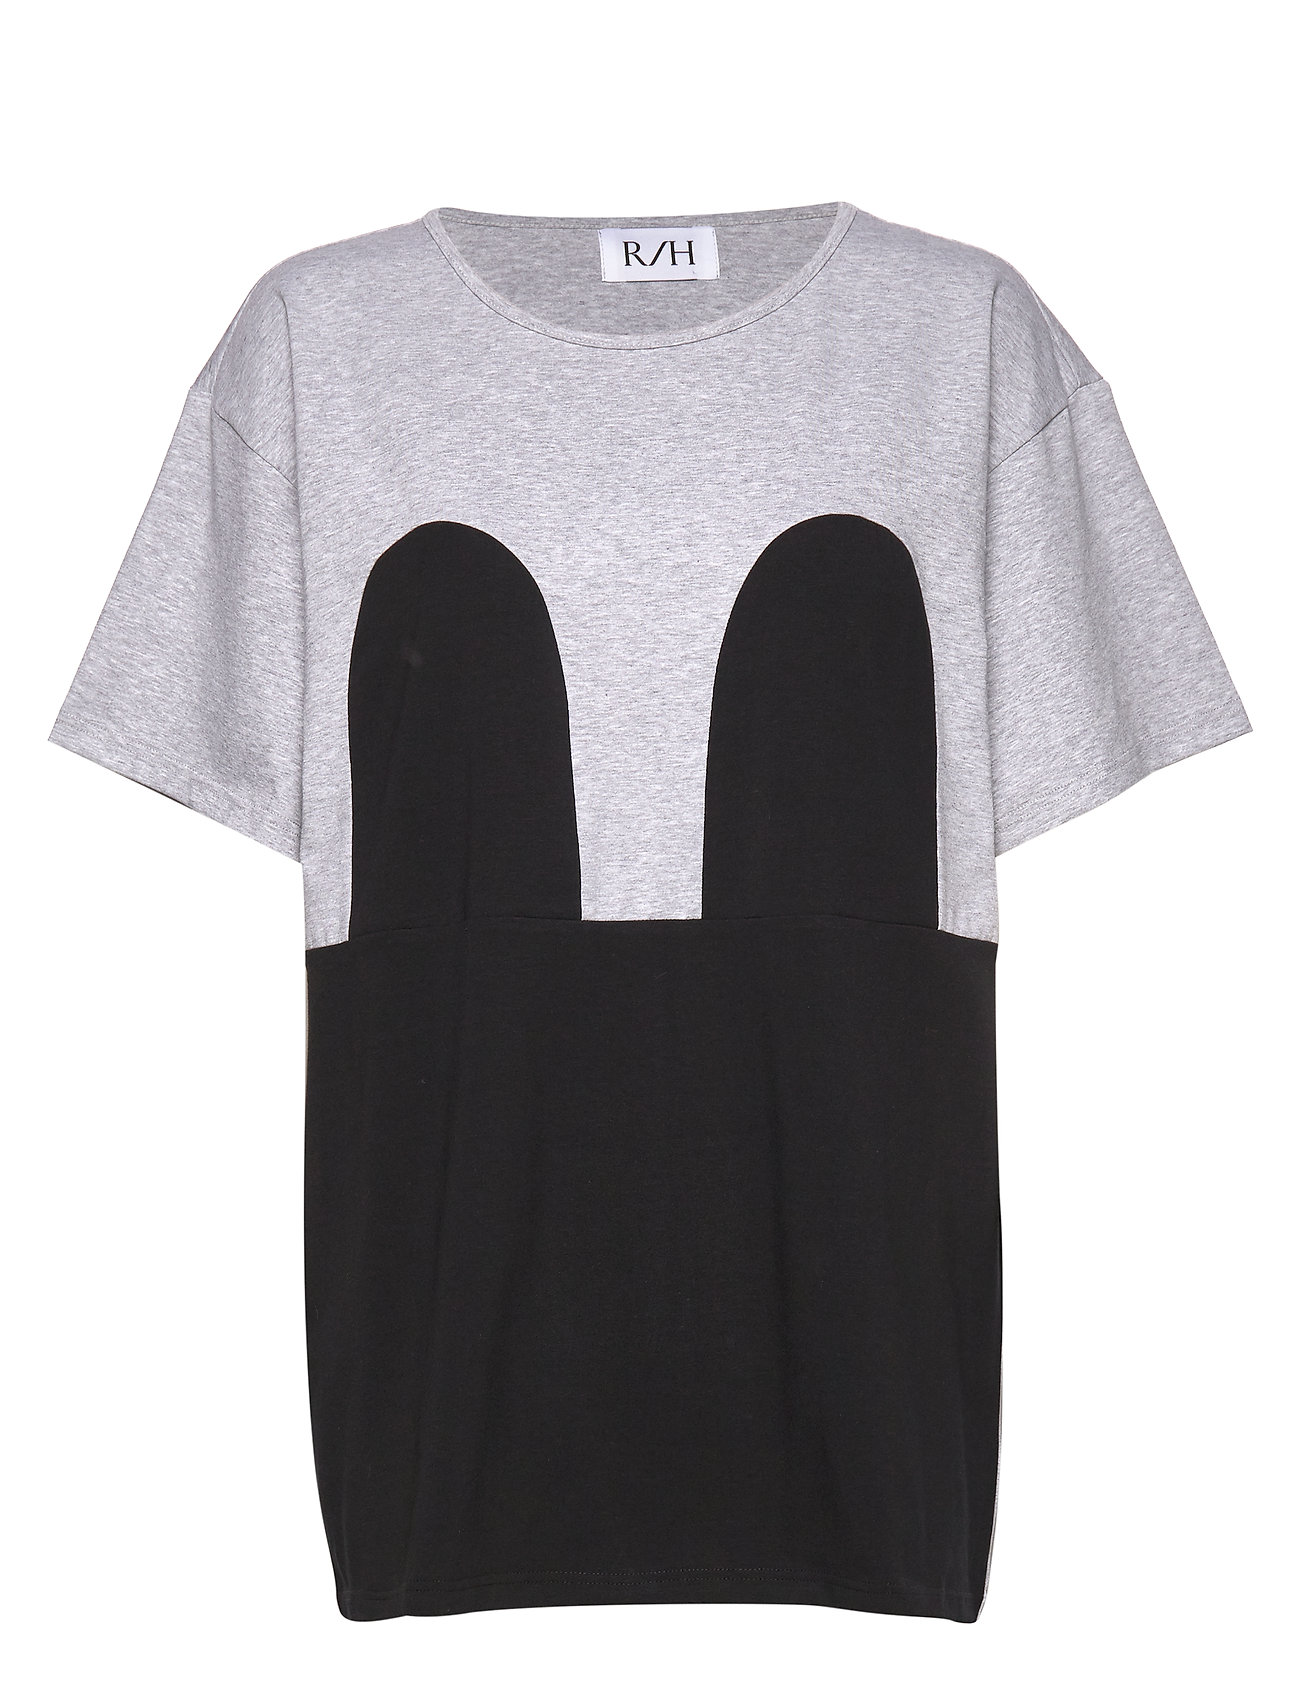 Image of Mickey Loose Tee T-shirt Top Grå R/H Studio (3360910823)